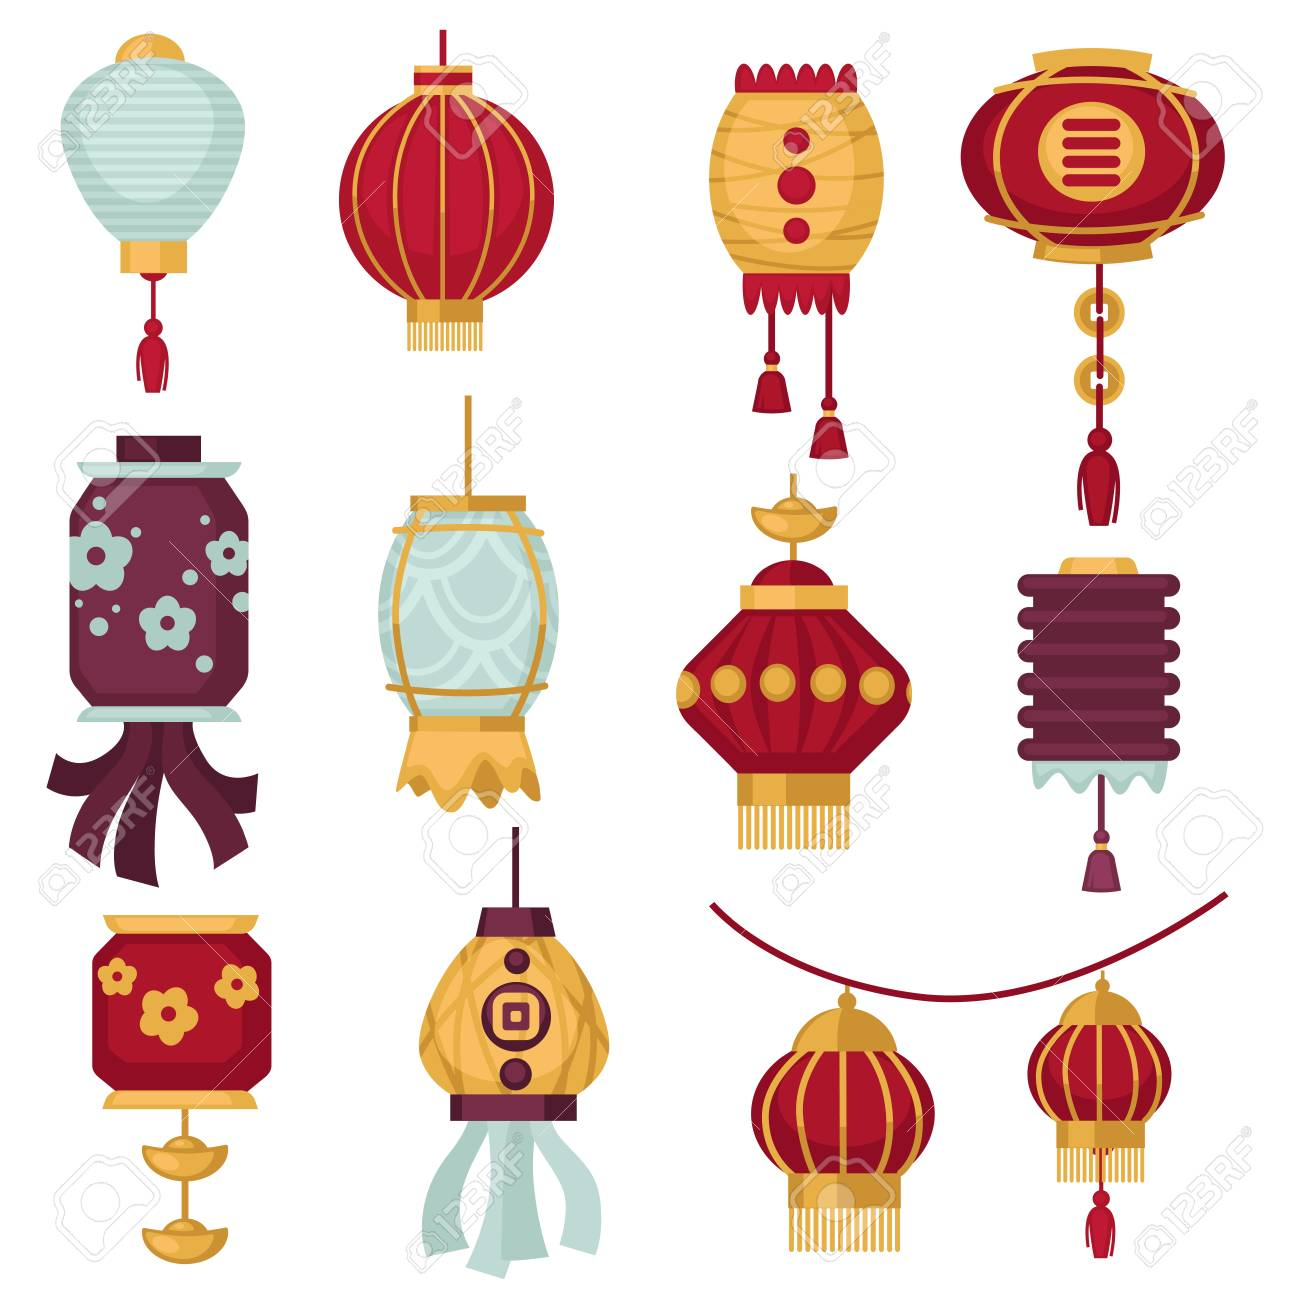 Chinese lanterns or red paper traditonal China decorations for New Year festival. Vector isolated icons of paper lanterns with hieroglyph calligrpahy or floral pattern design and tassels - 93446731